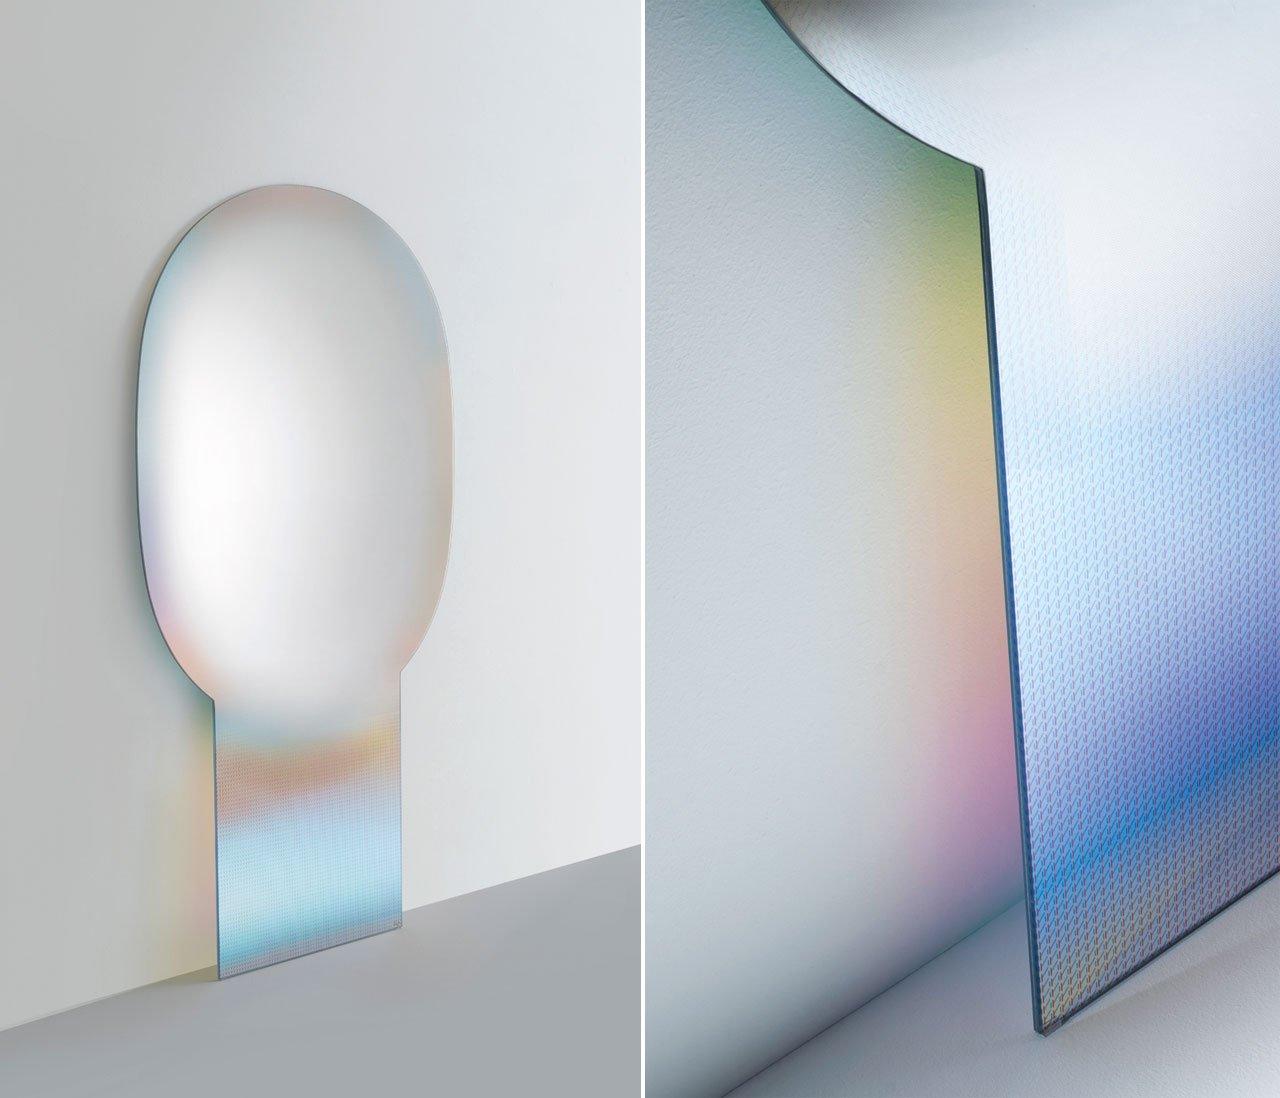 Mirror from the SHIMMER series by Patricia Urquiola for Glas Italia.